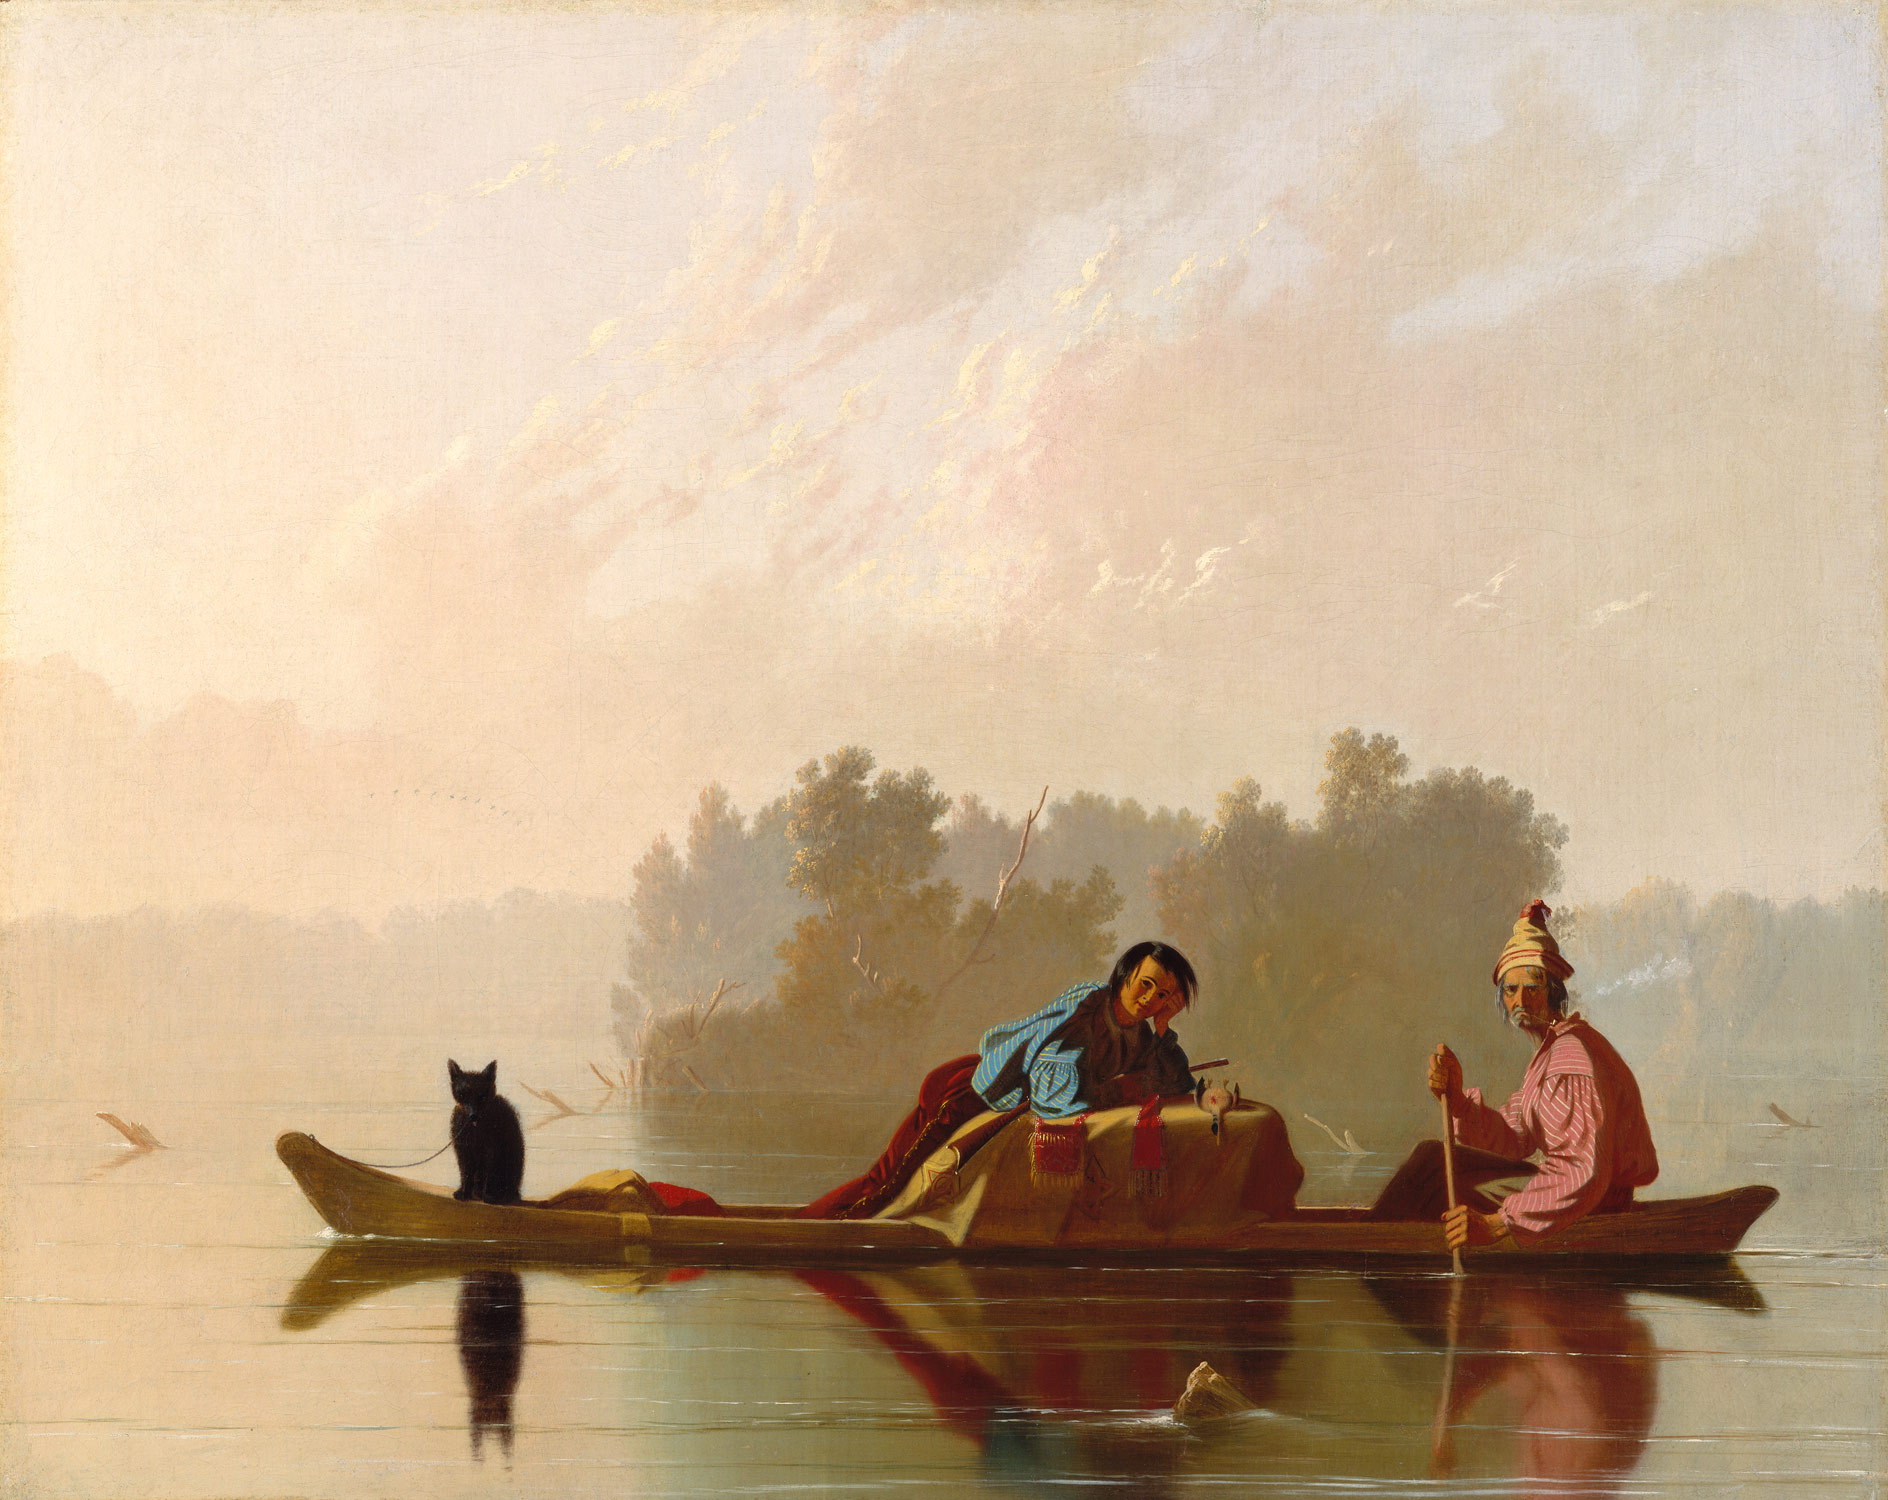 Fur Traders Descending the Missouri